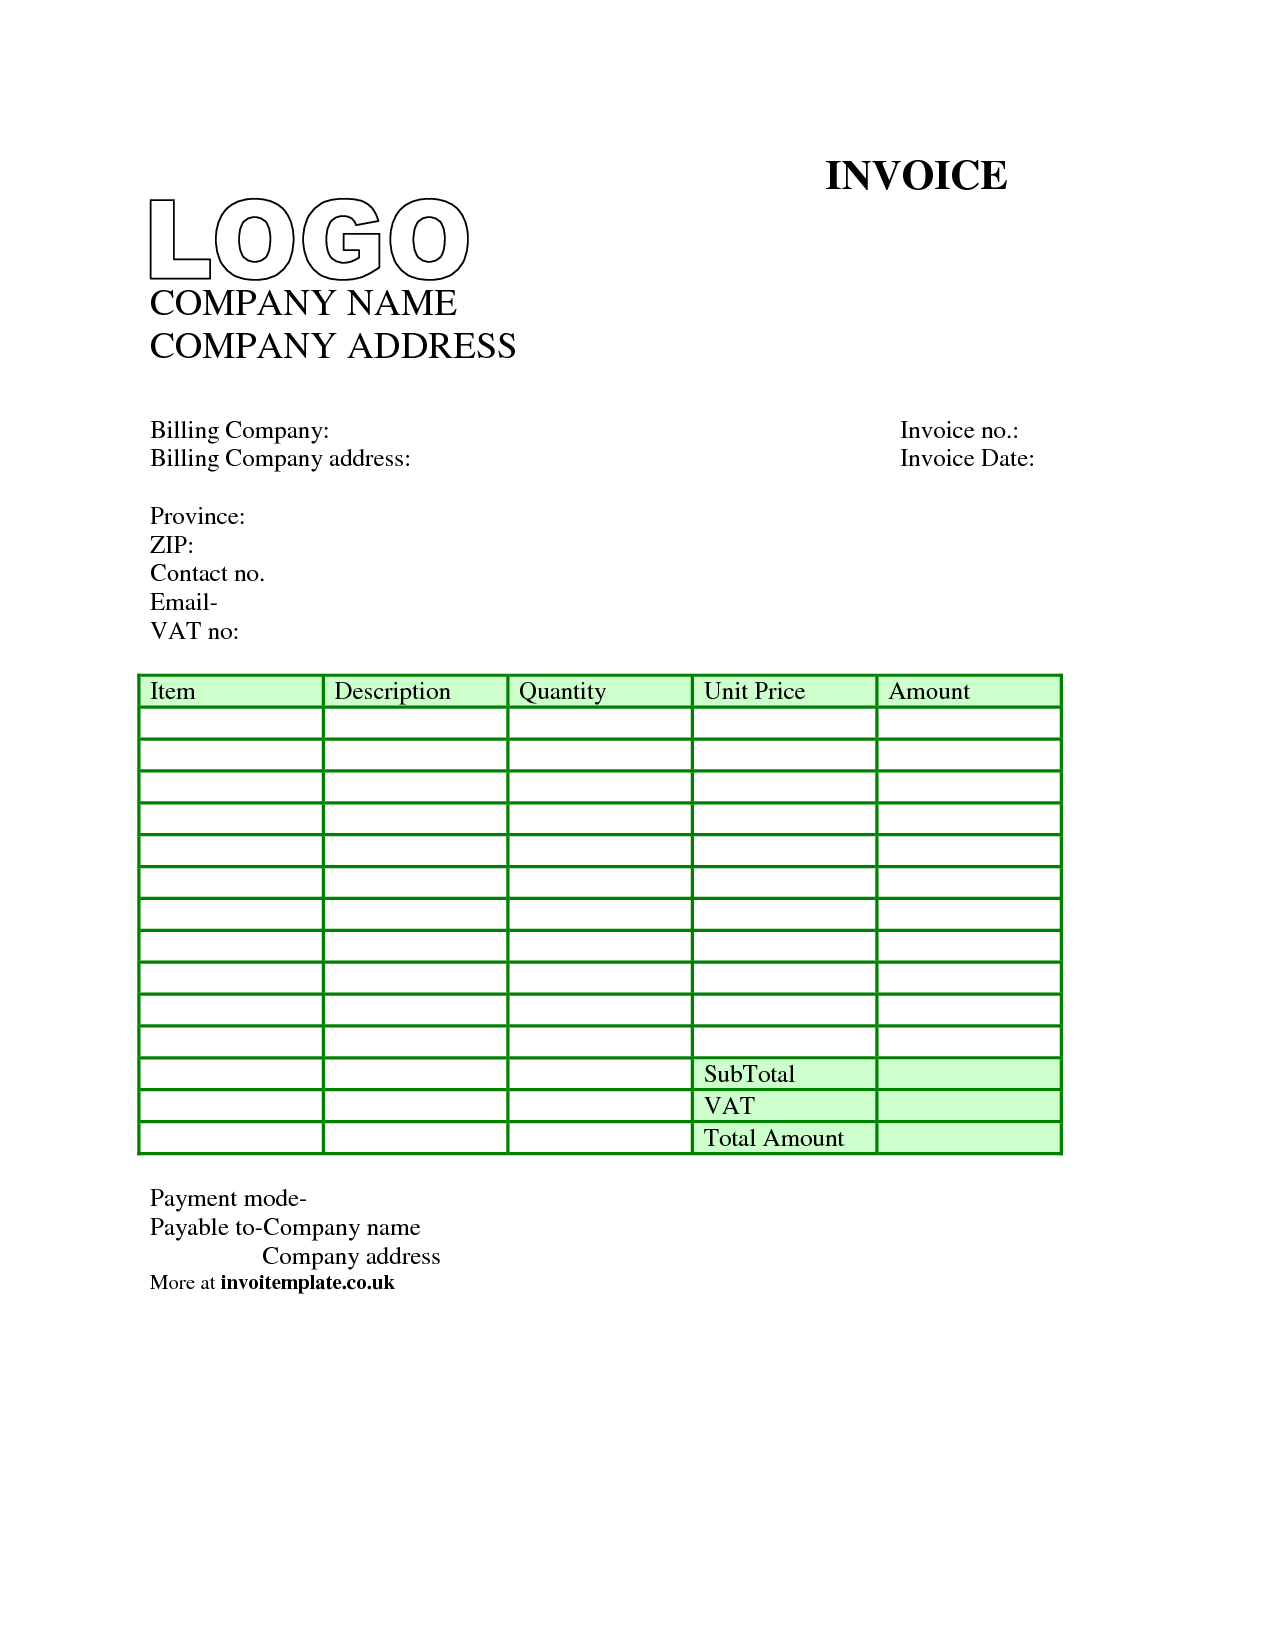 Free Downloadable Invoice Template and Uk Vat Invoice Template Word Firmsinjafo